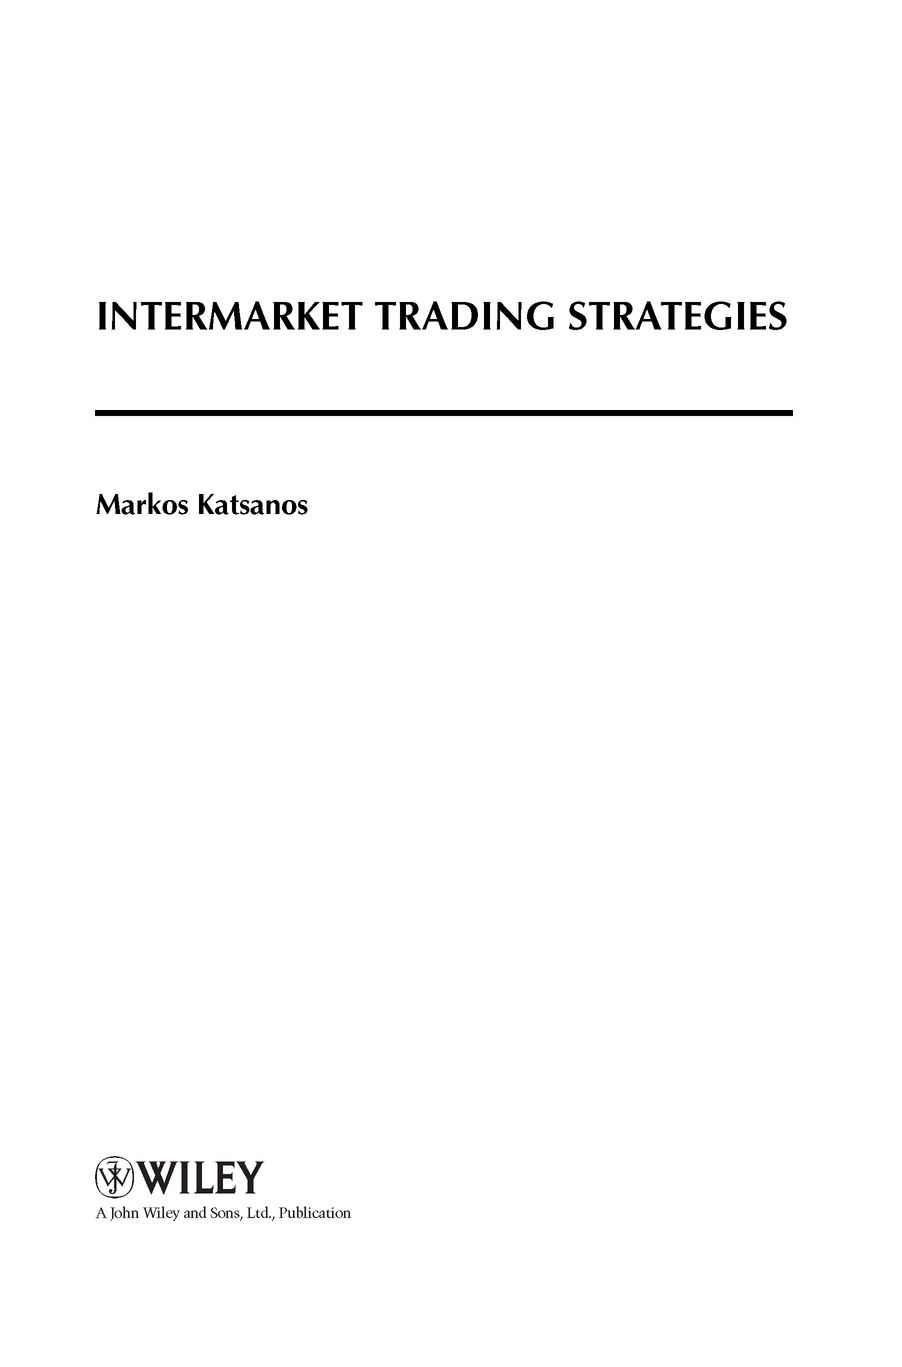 Intermarket trading strategies by katsanos